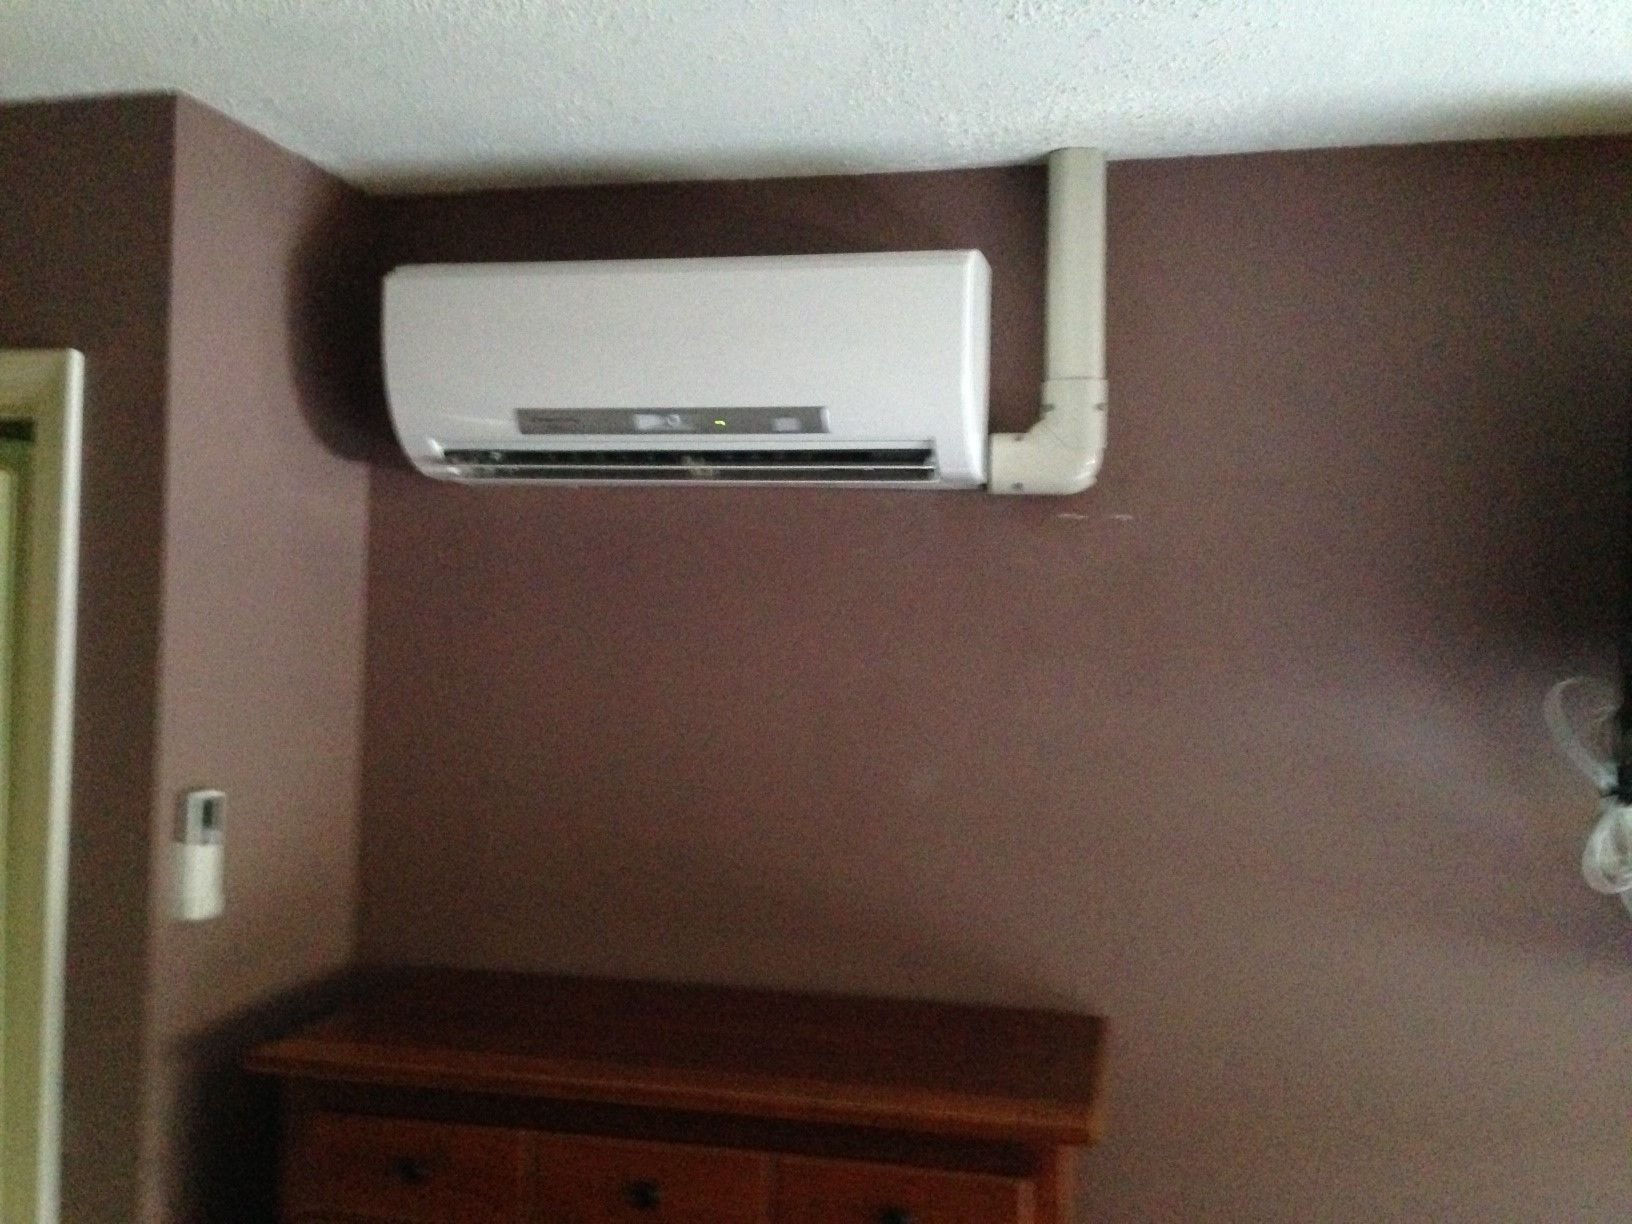 Mitsubishi Wall Mount Ductless Heat Pump Ductless Ductless Heating And Cooling Ductless Heat Pump